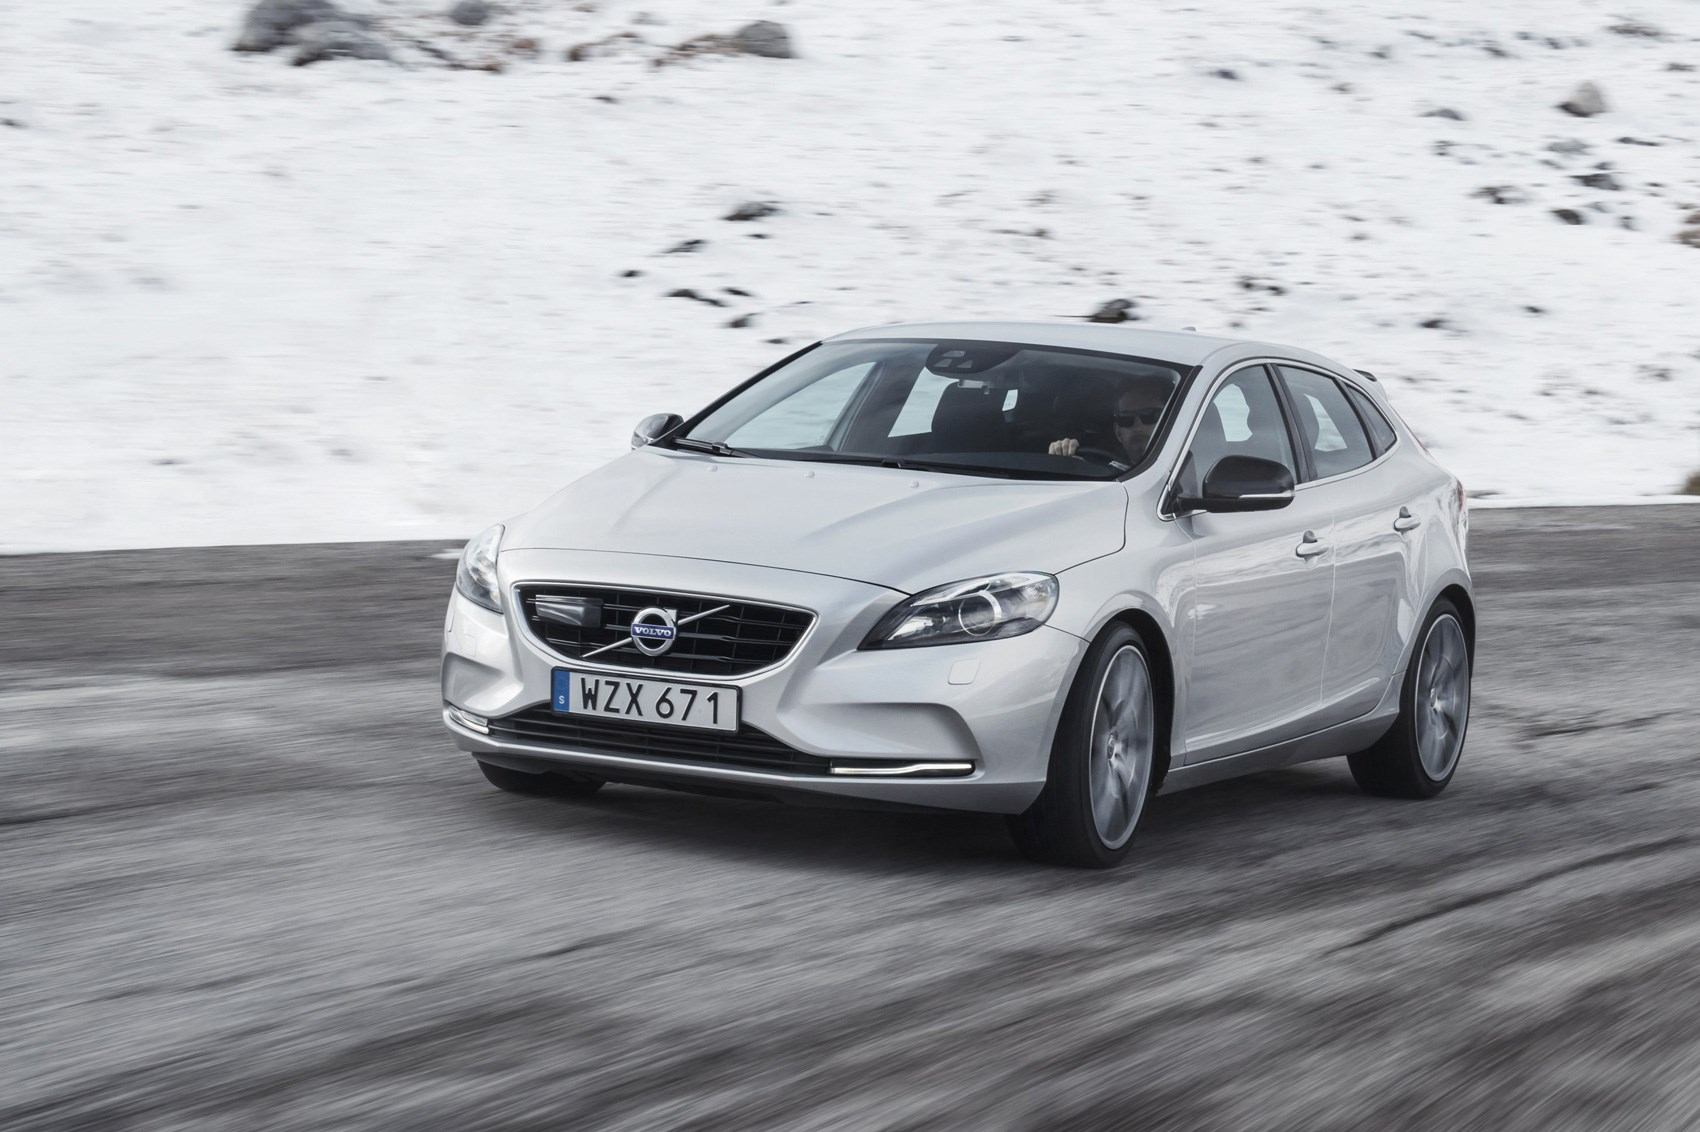 Volvo V40 T5 R Design Pro Polestar 2017 Review